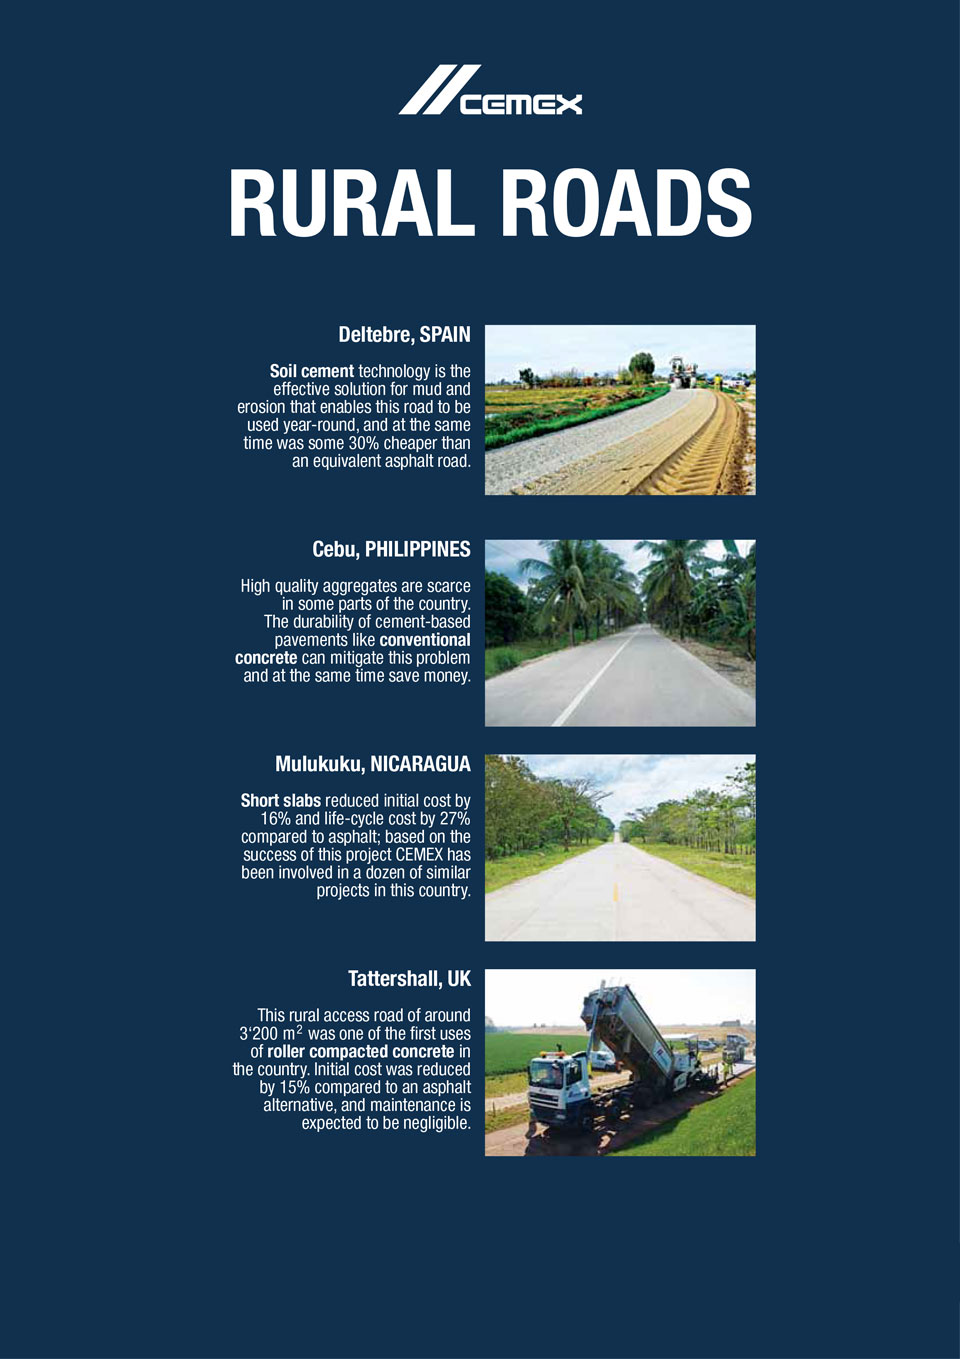 the image shows several rural roads CEMEX has helped with the construction of